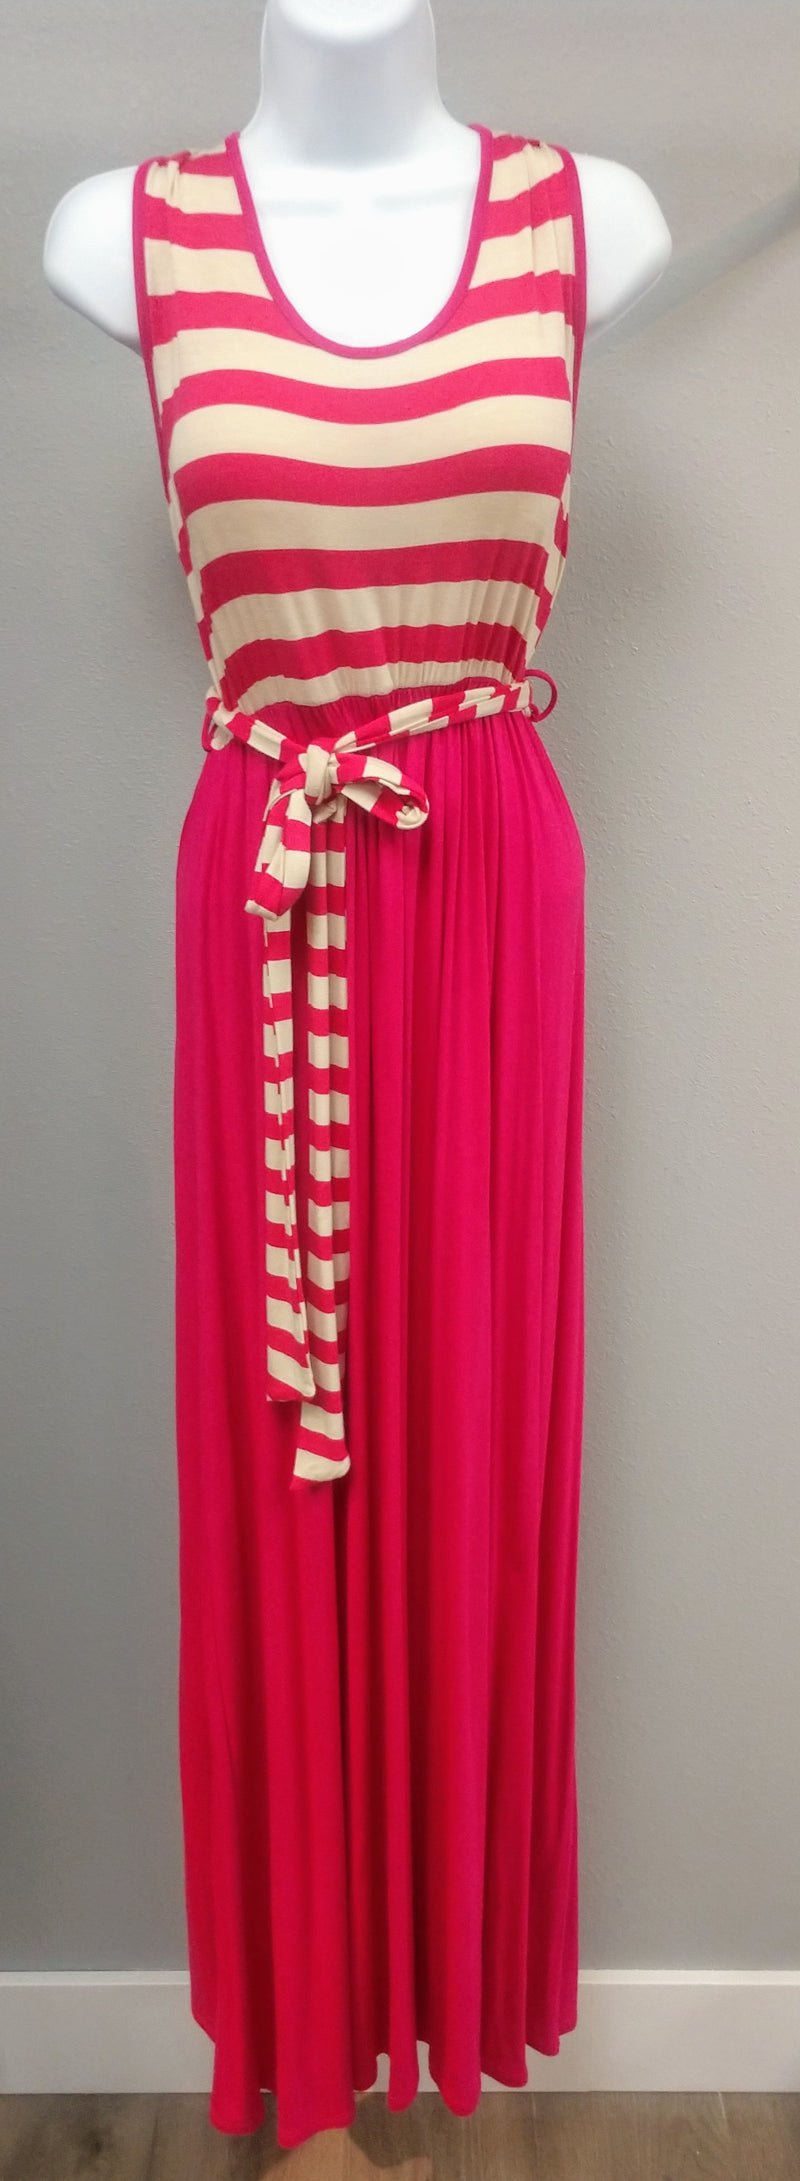 Pink Maxi Dress with Striped Belt